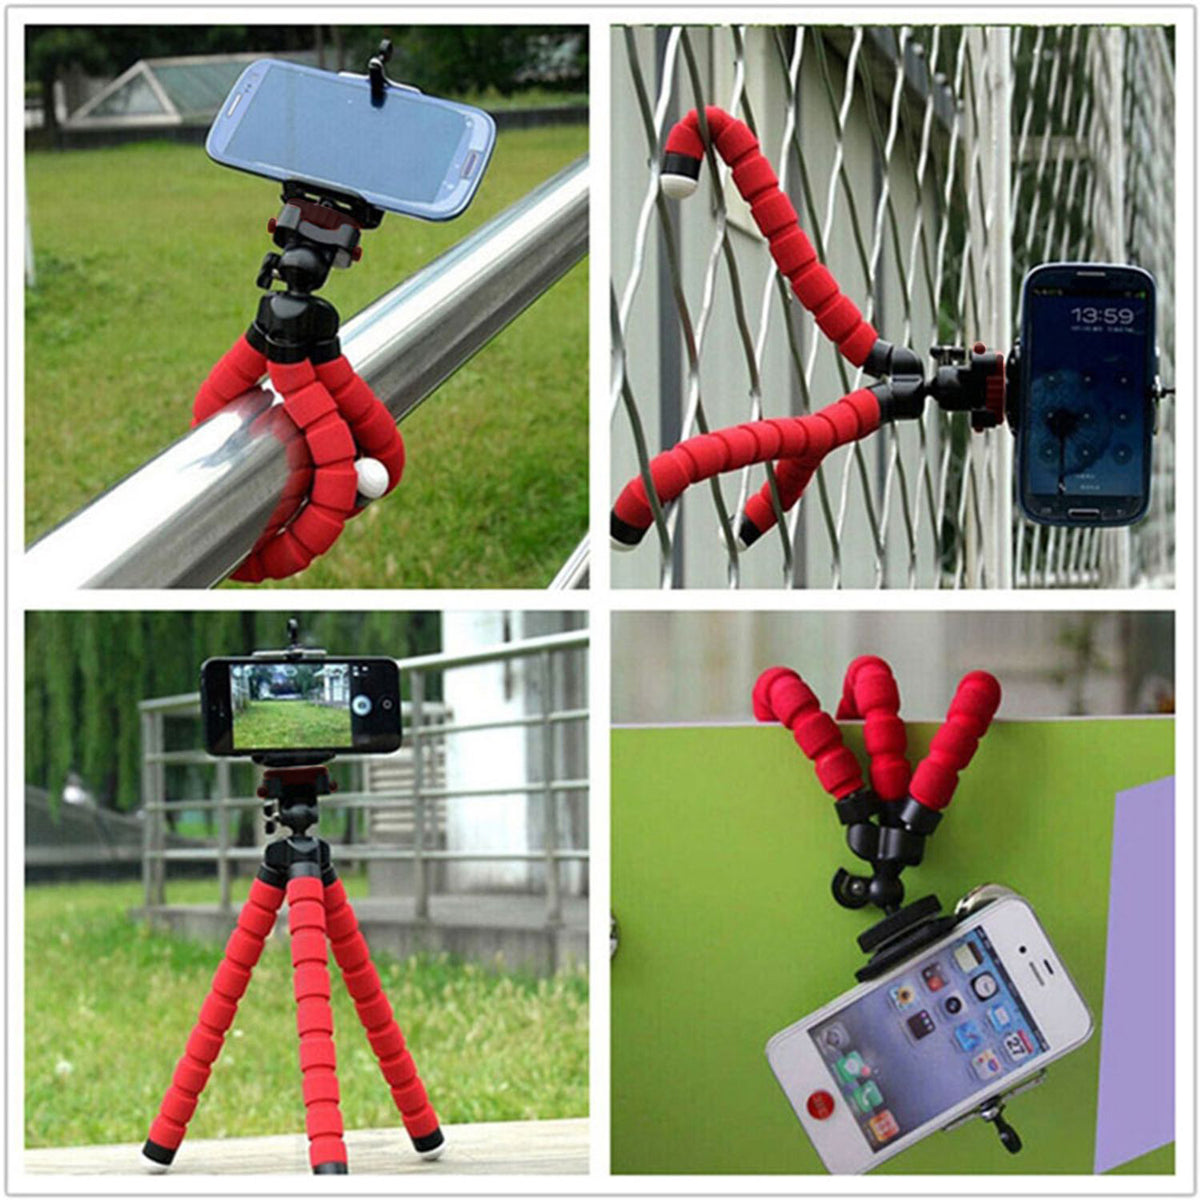 Flexible red tripod shown hanging, wrapped around pole, standing on floor